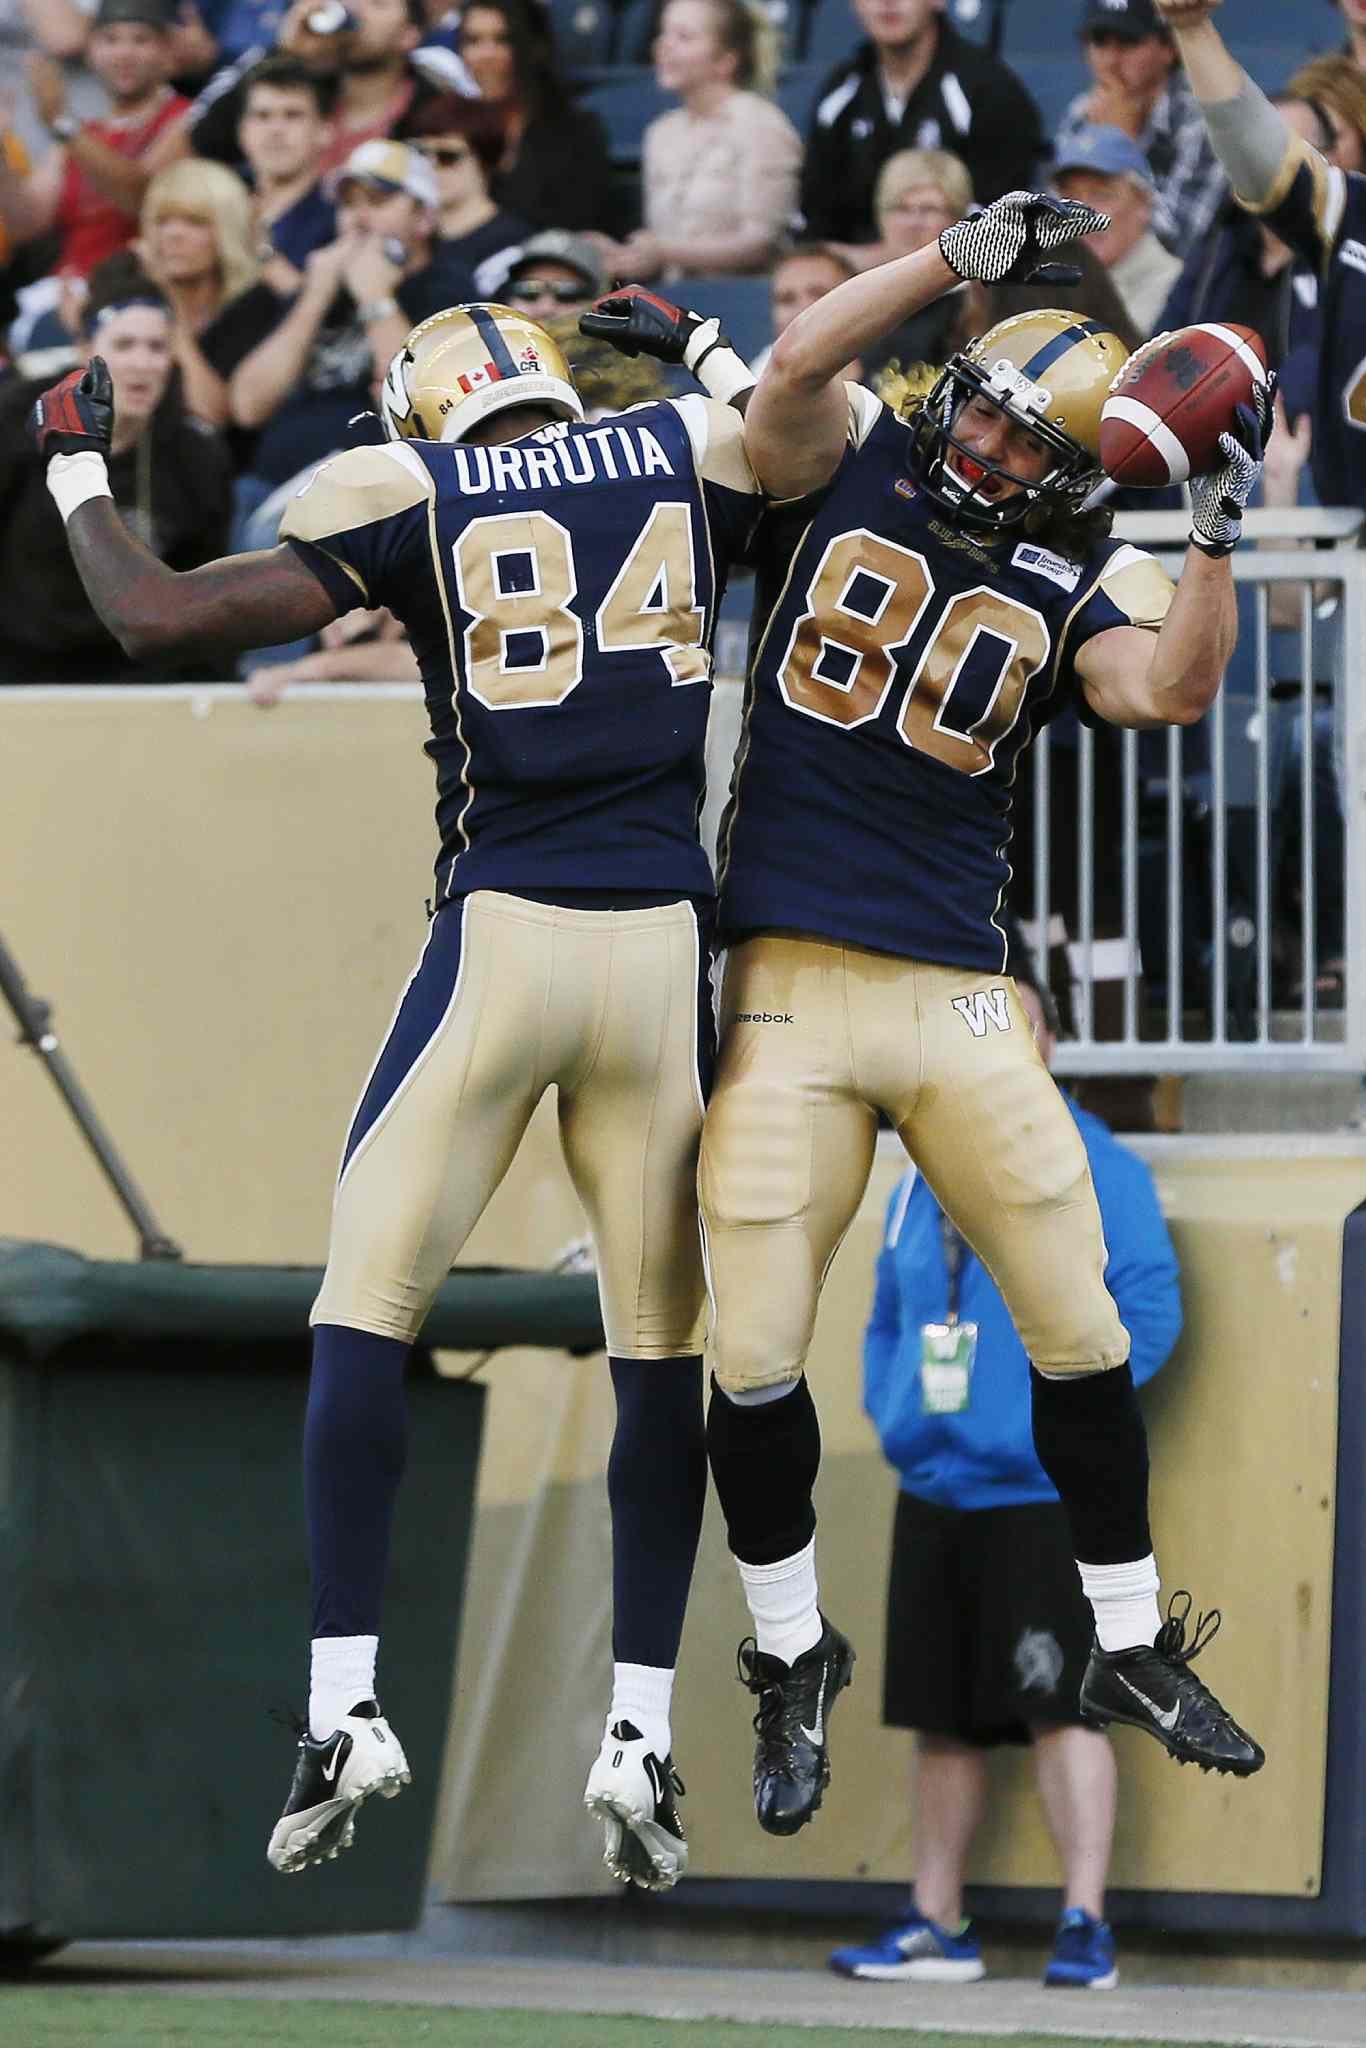 Bombers prospects Mario Urrutia, left, and Julian Feoli-Gudino celebrate Feoli-Gudino's first-half touchdown against the Argonauts.